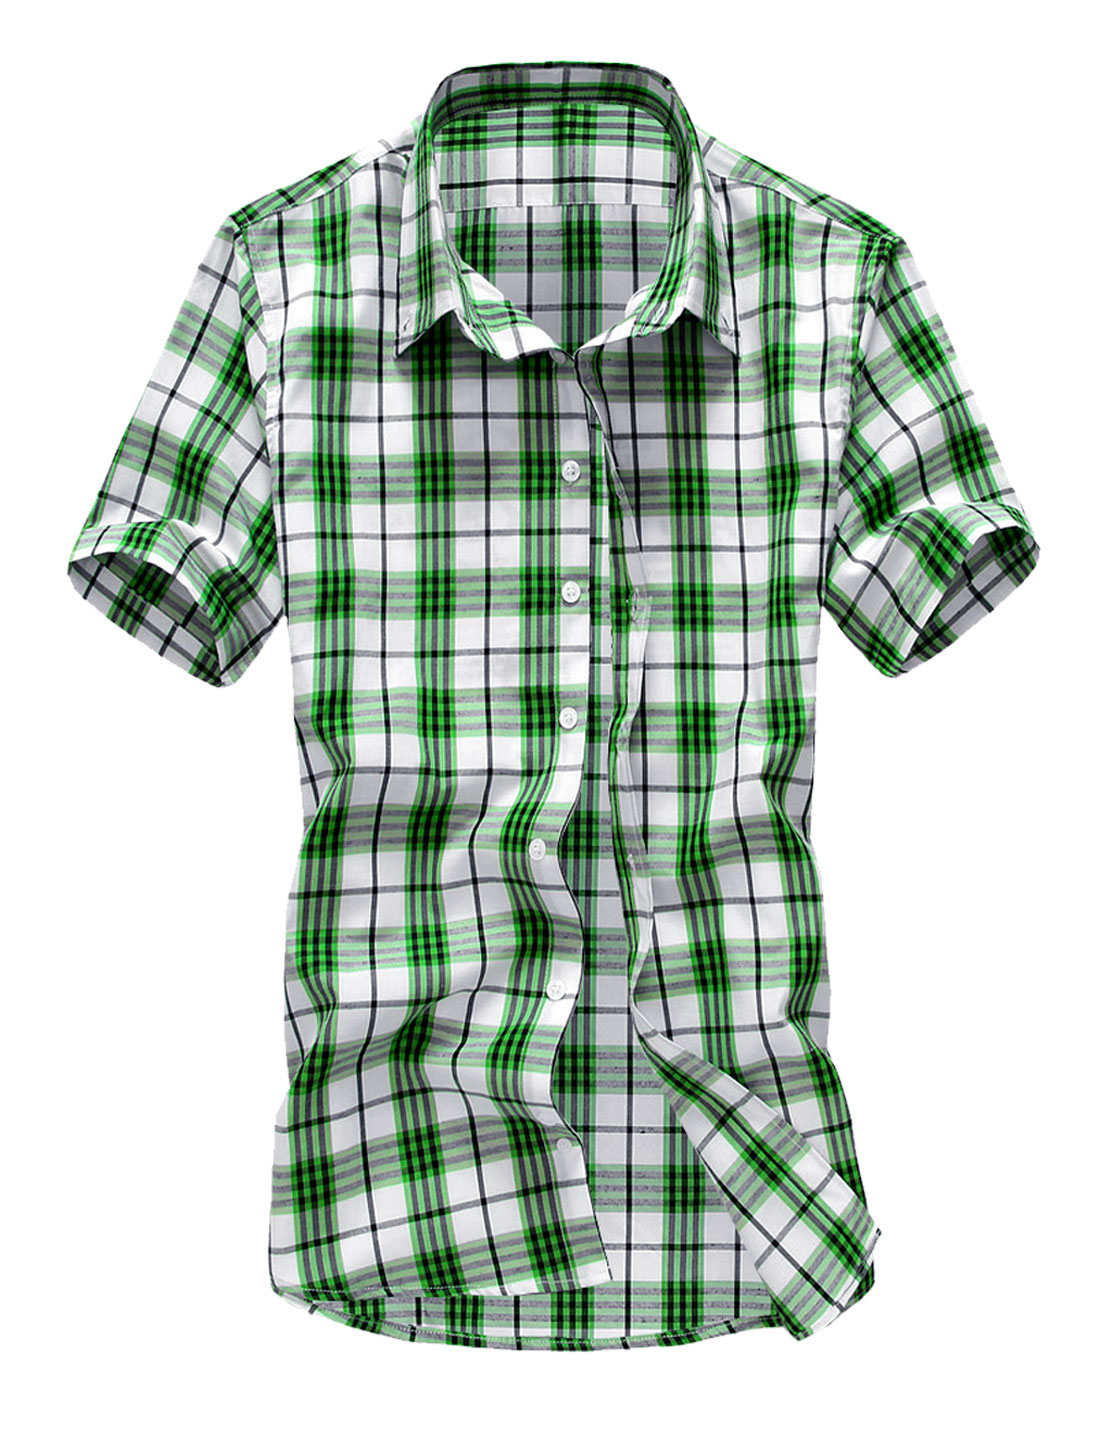 Men Modern Point Collar Short Sleeve Plaids Button Up Shirt Grass Green M